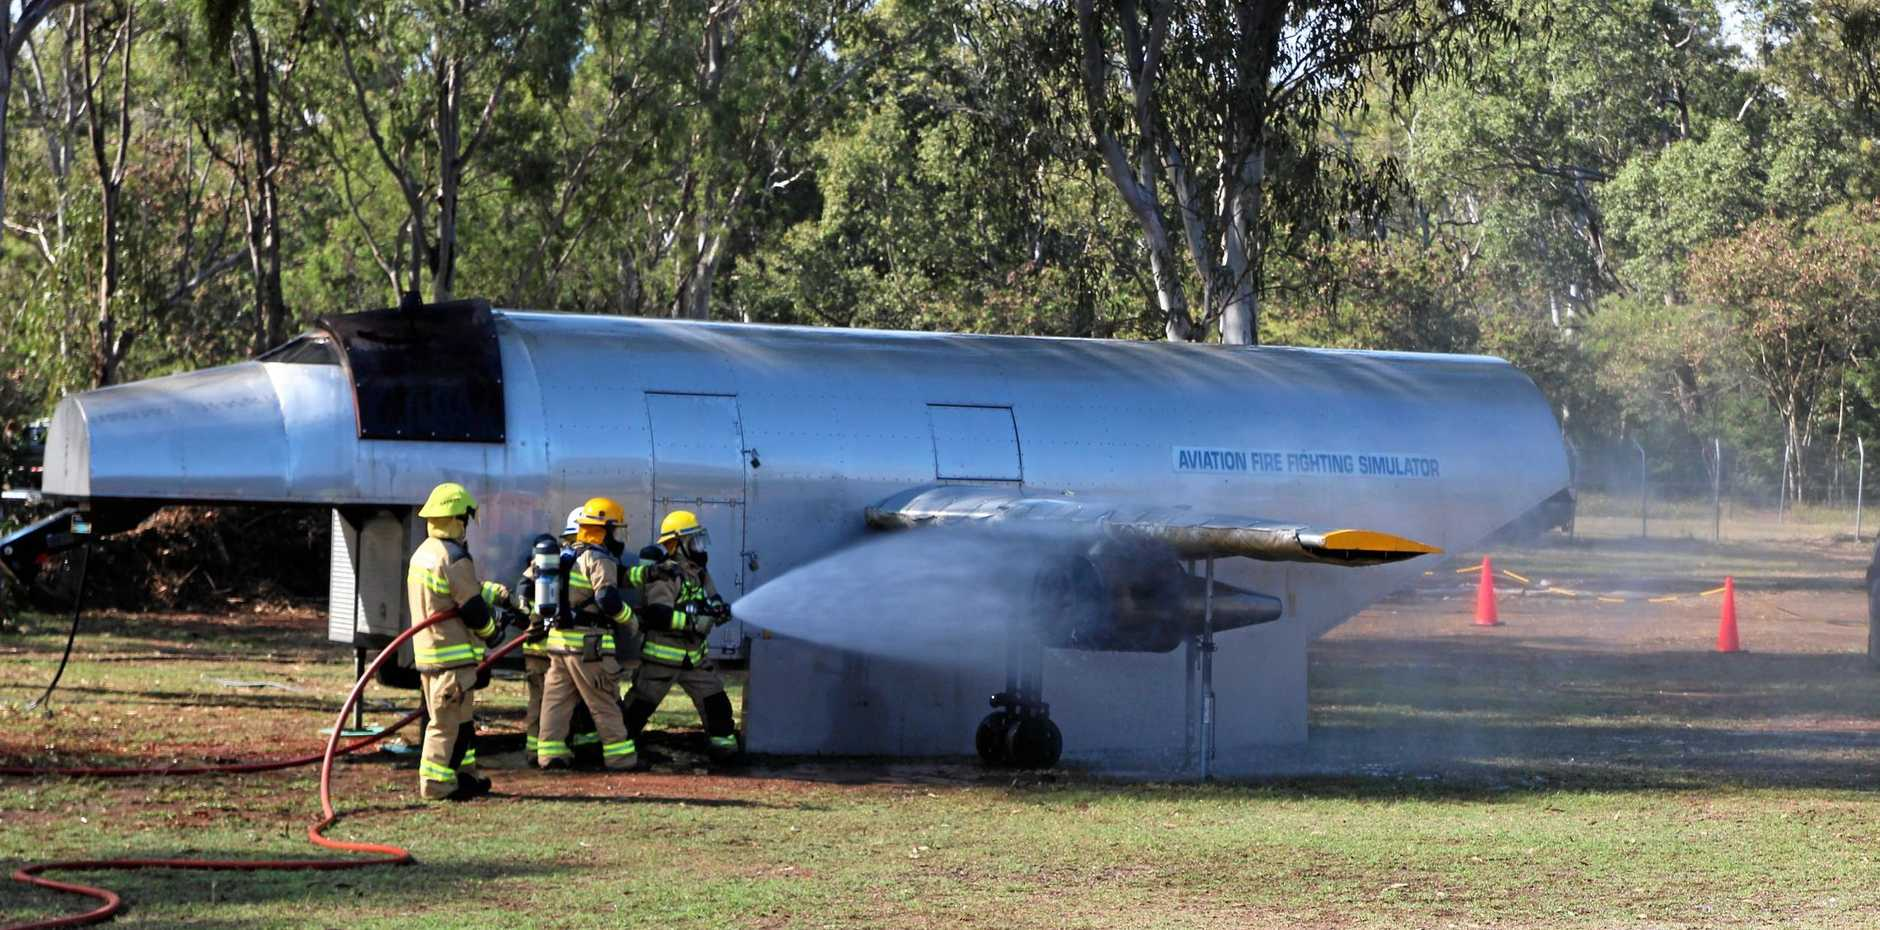 Rural Fire Service crews show off their skills in a simulated plane crash where the engine caught fire.